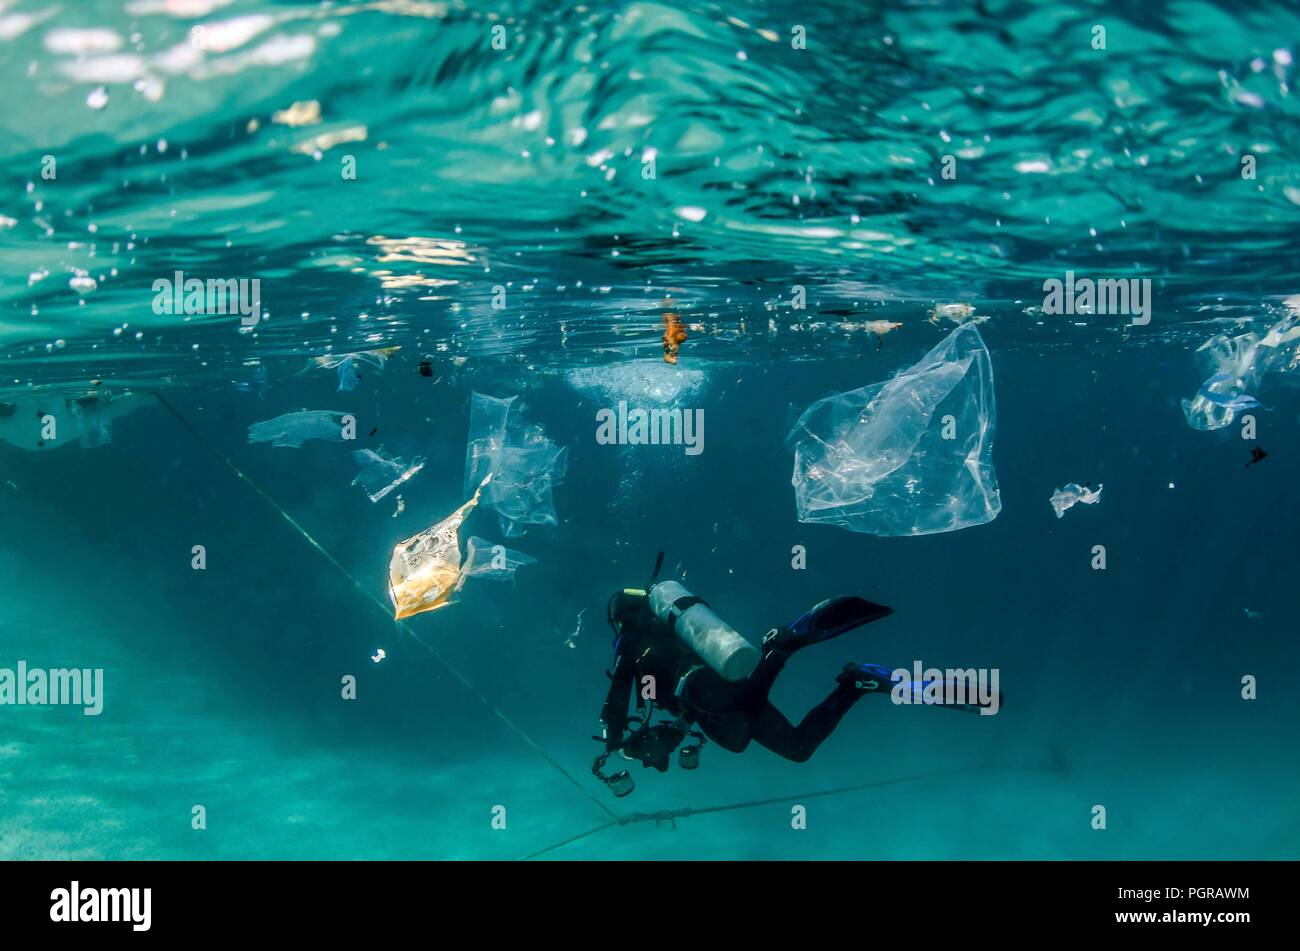 Diver swims through plastic pollution underwater in Egypt - Stock Image